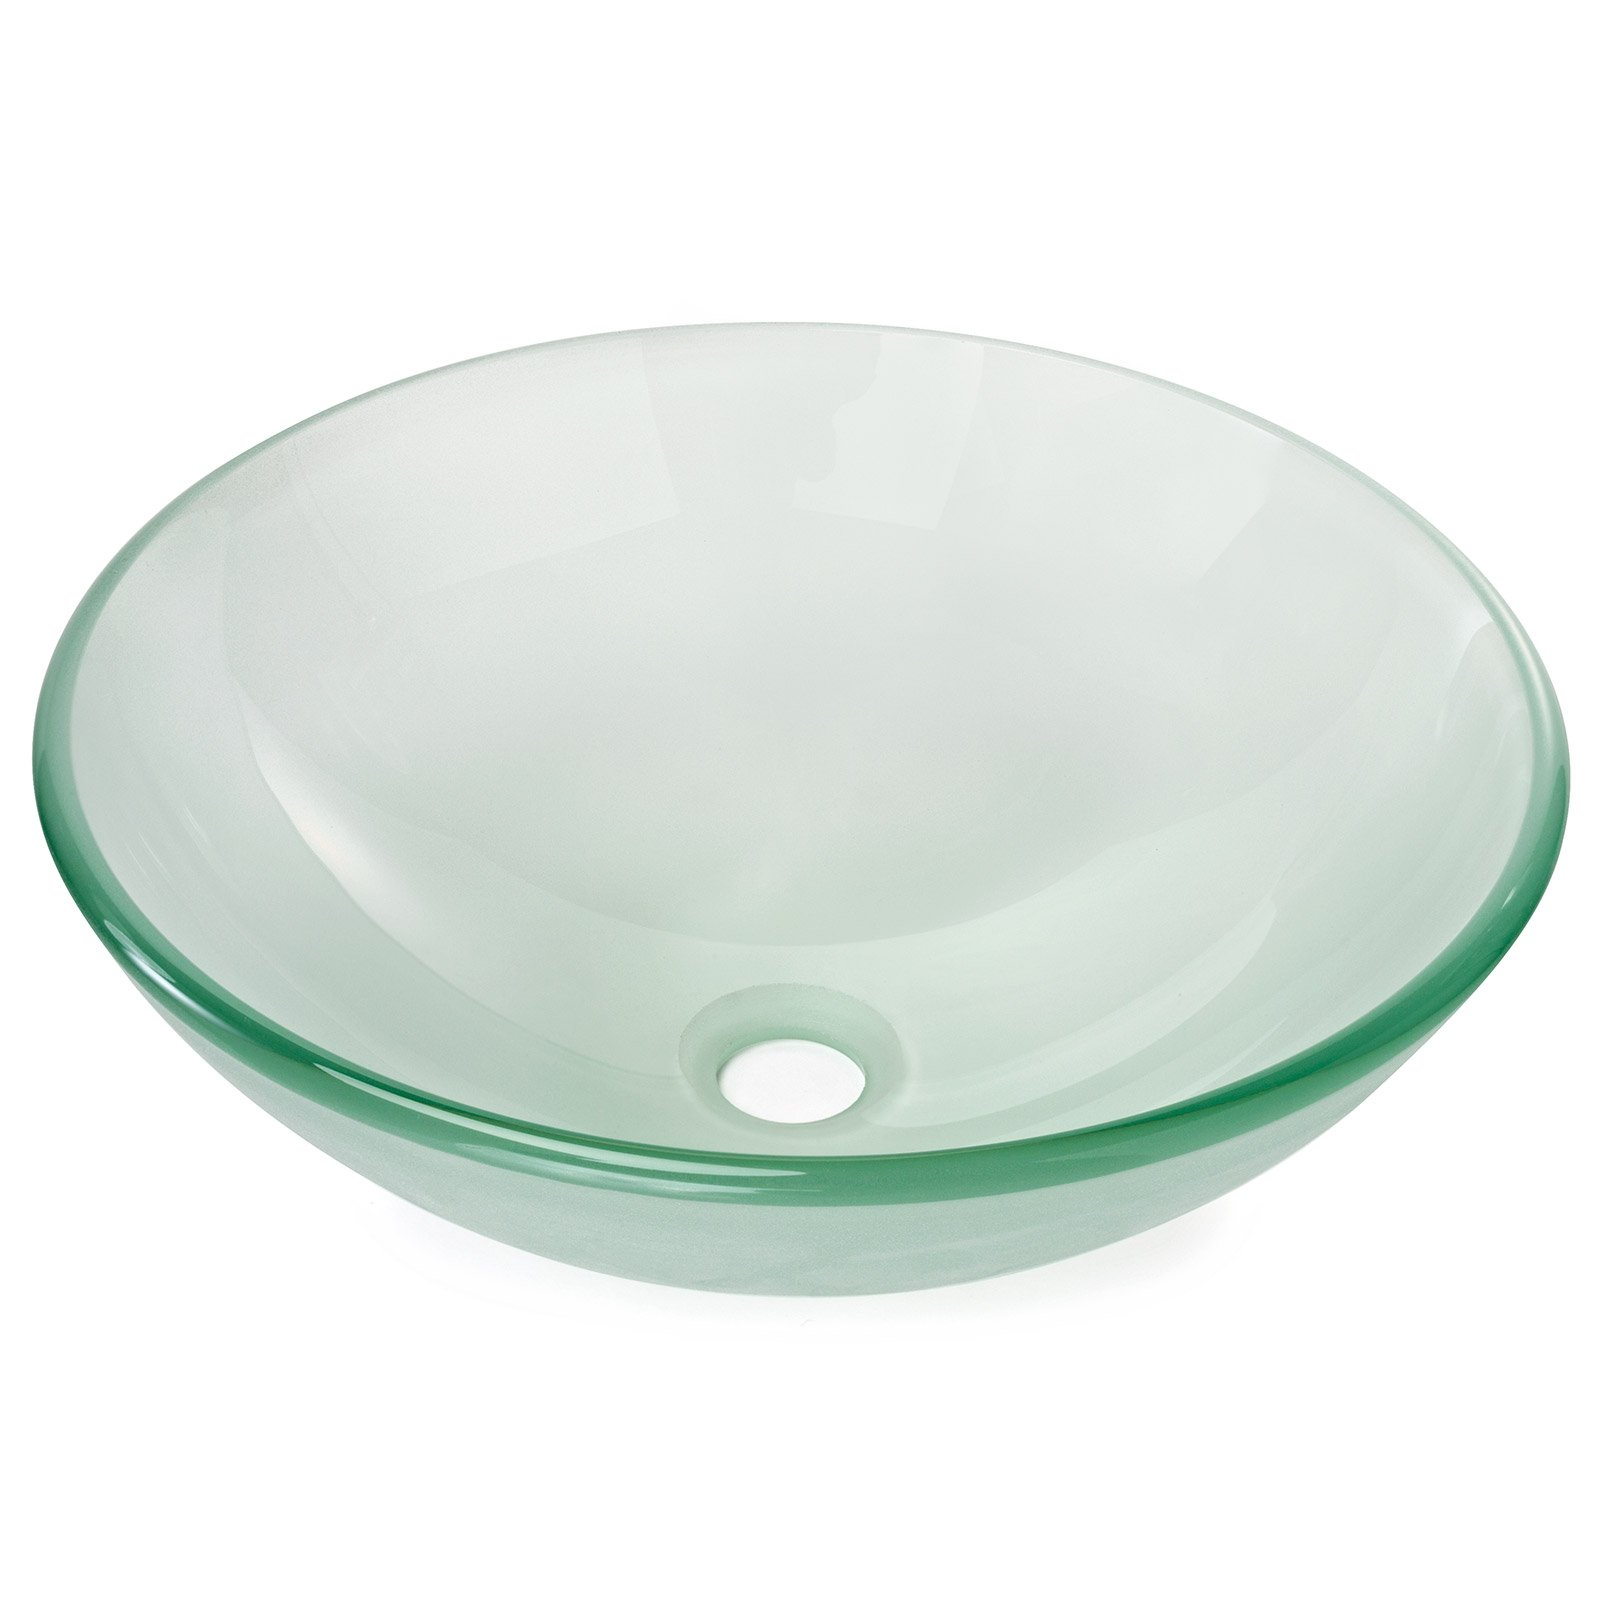 Miligoré Modern Glass Vessel Sink - Above Counter Bathroom Vanity Basin Bowl - Round Frosted